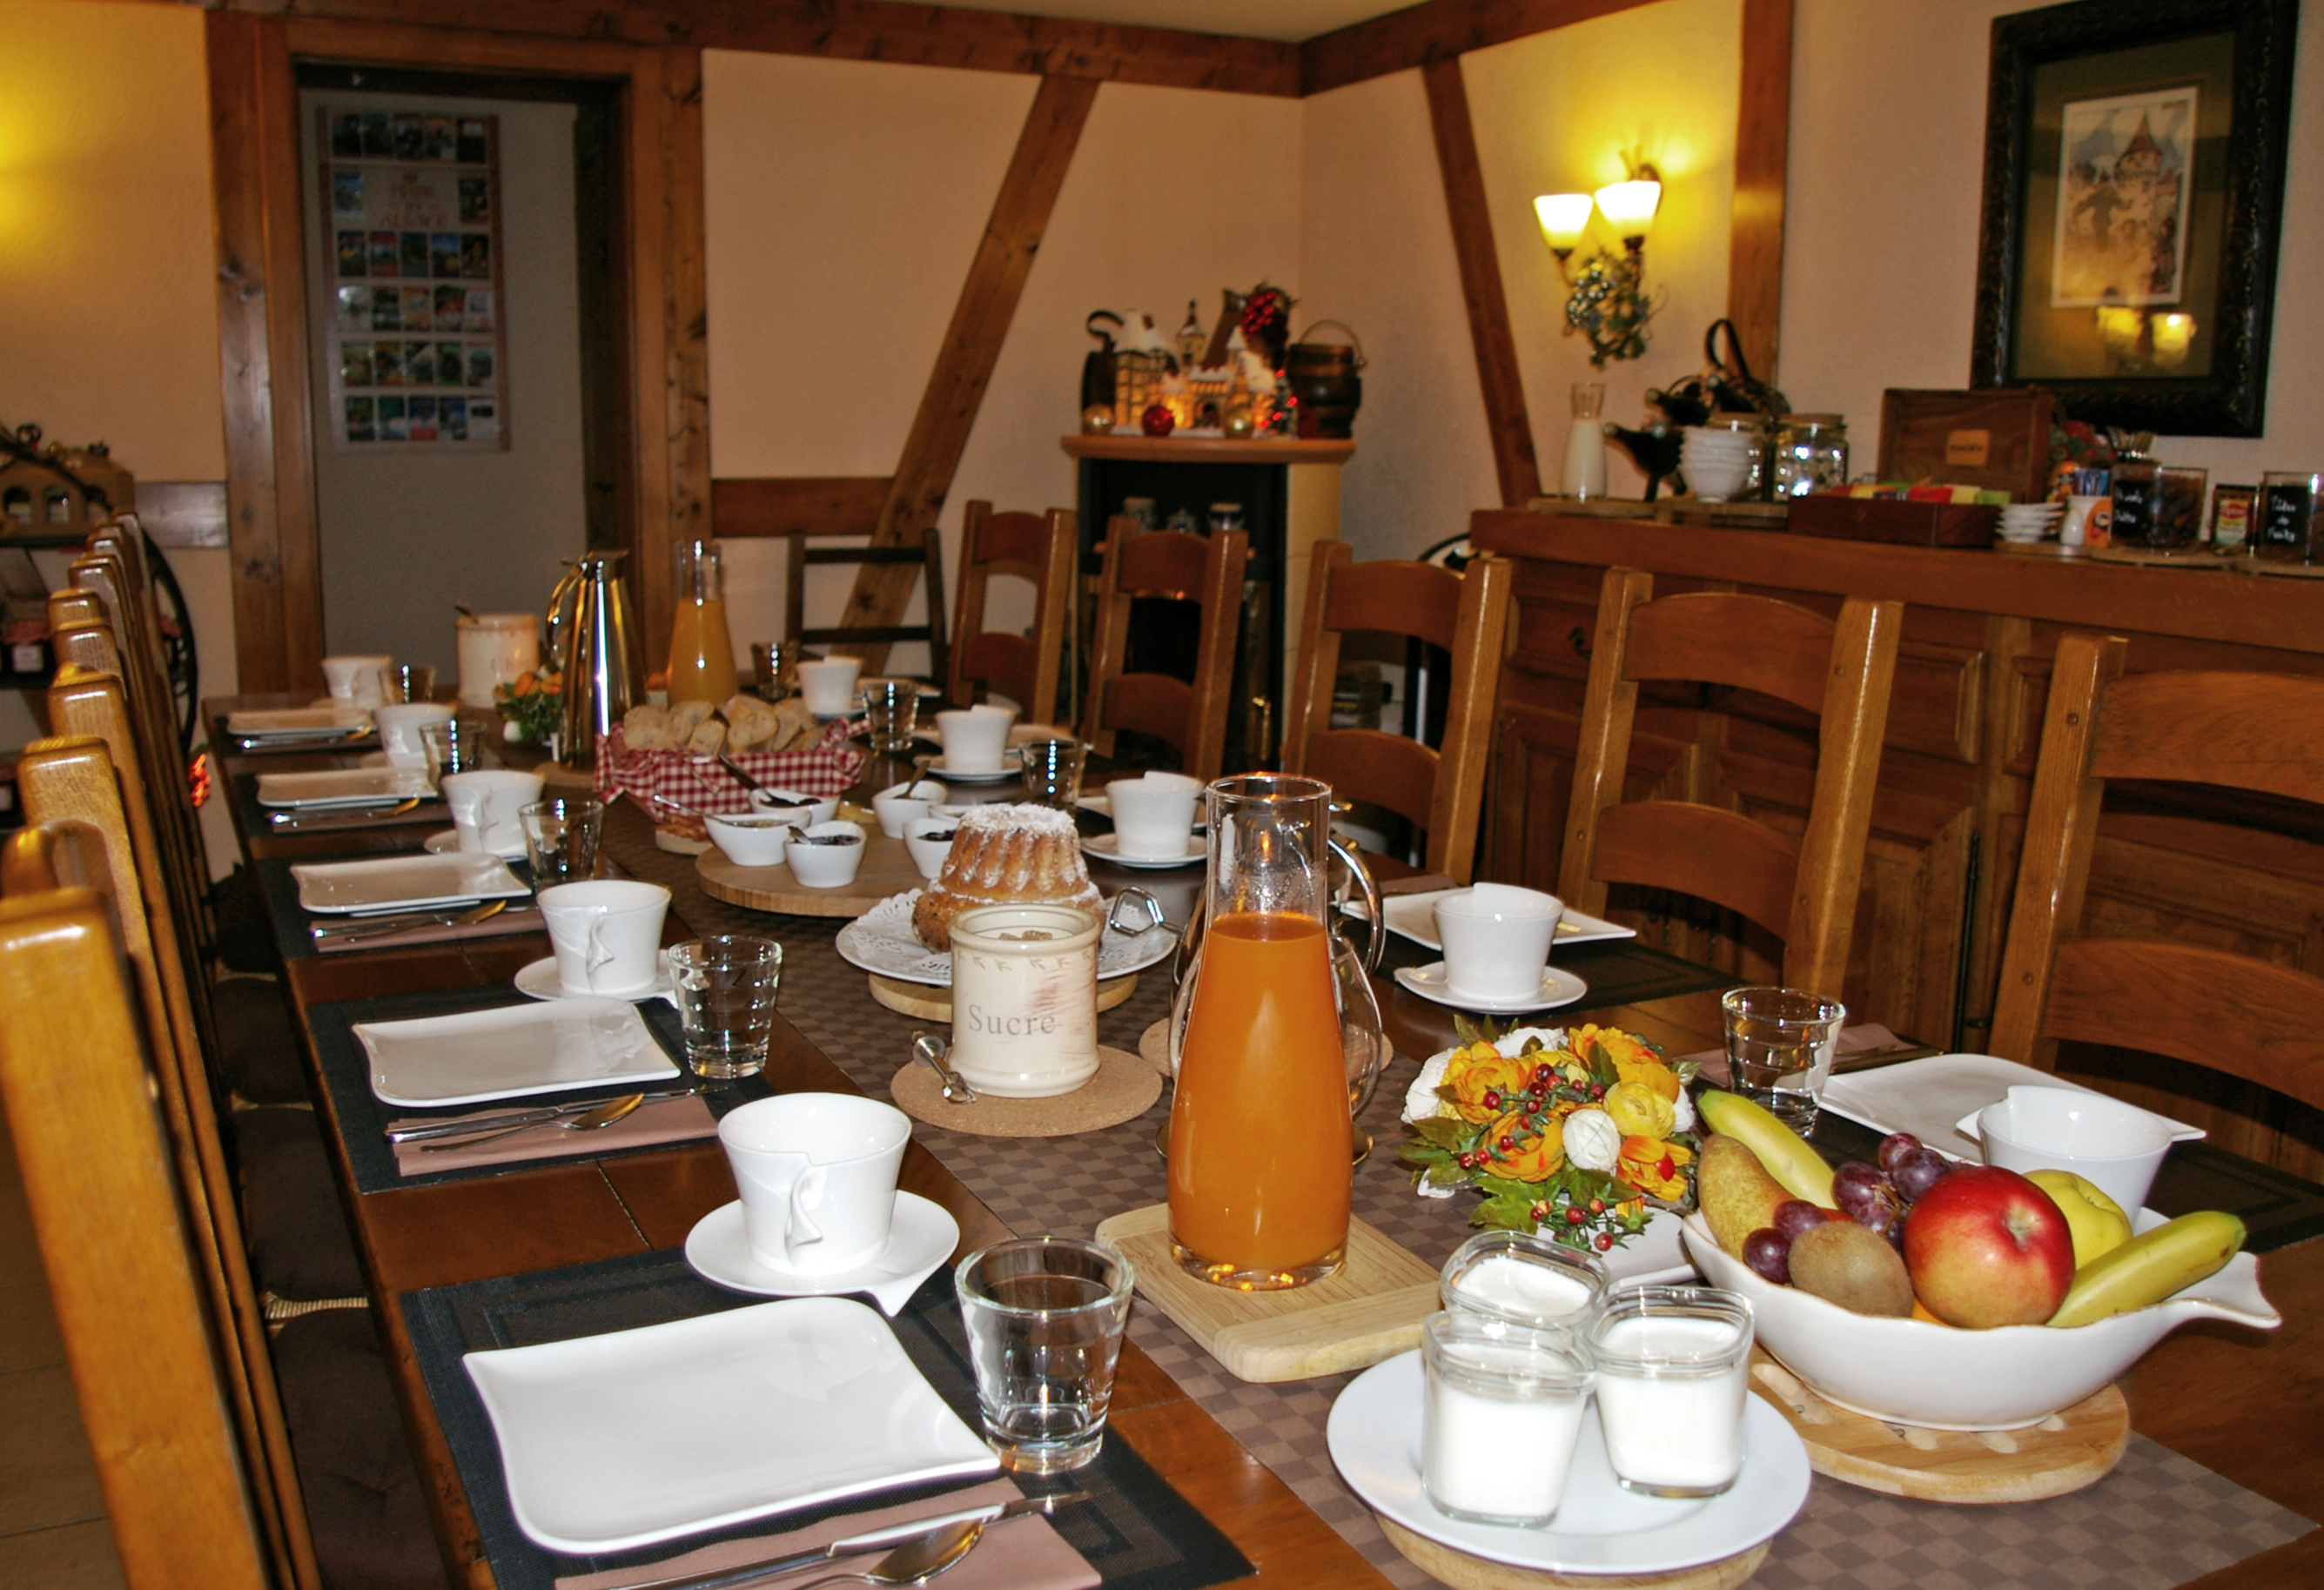 The Breakfast Charming Bed and Breakfast in Alsace on the Wine